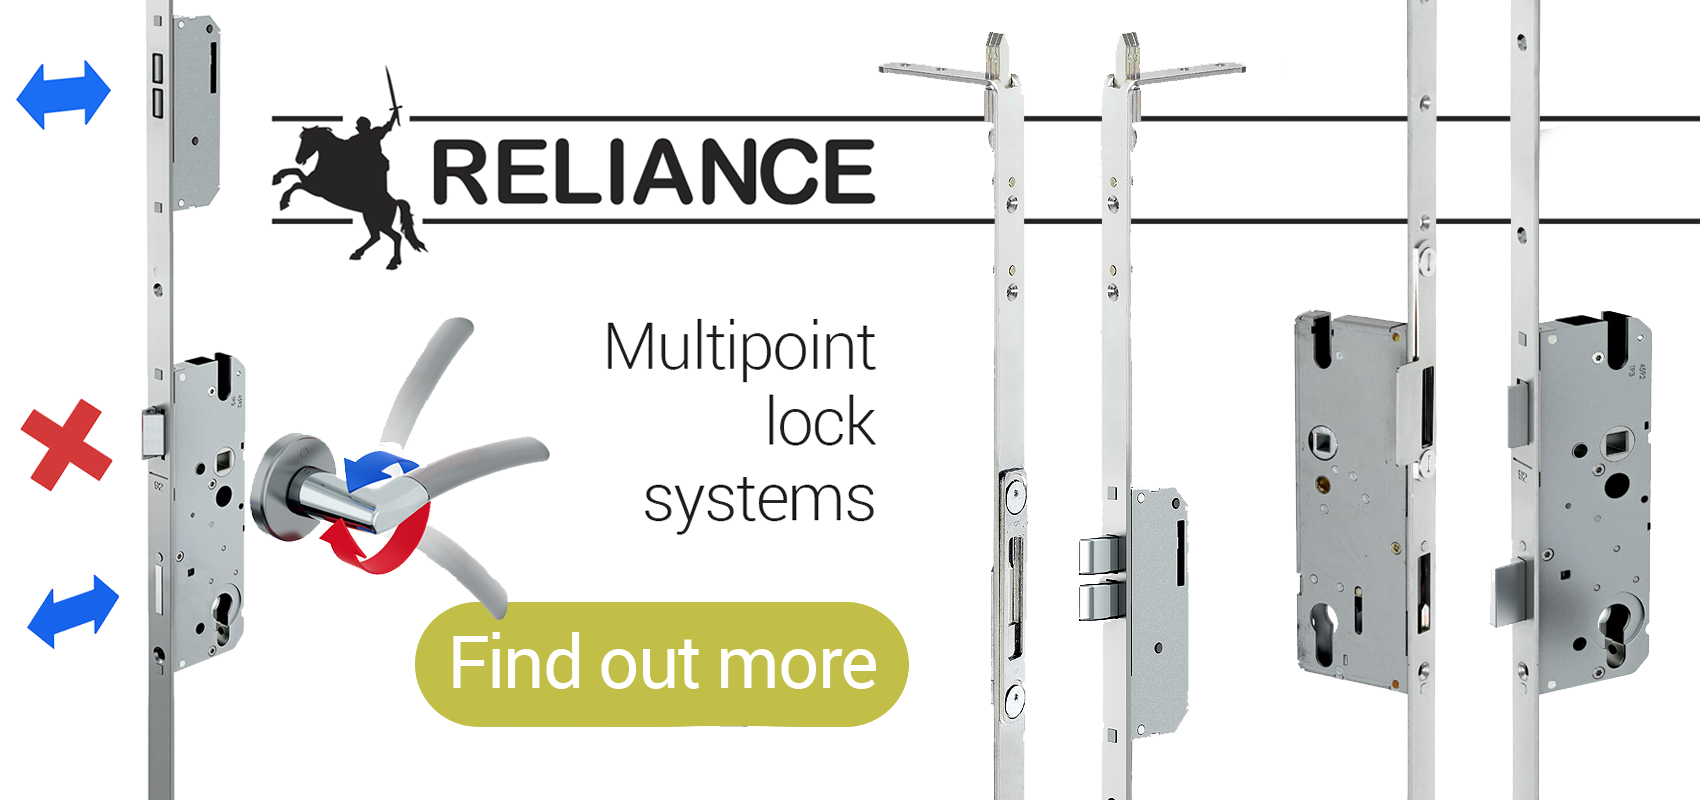 Relliance multipoint lock systems from Quest Hardware